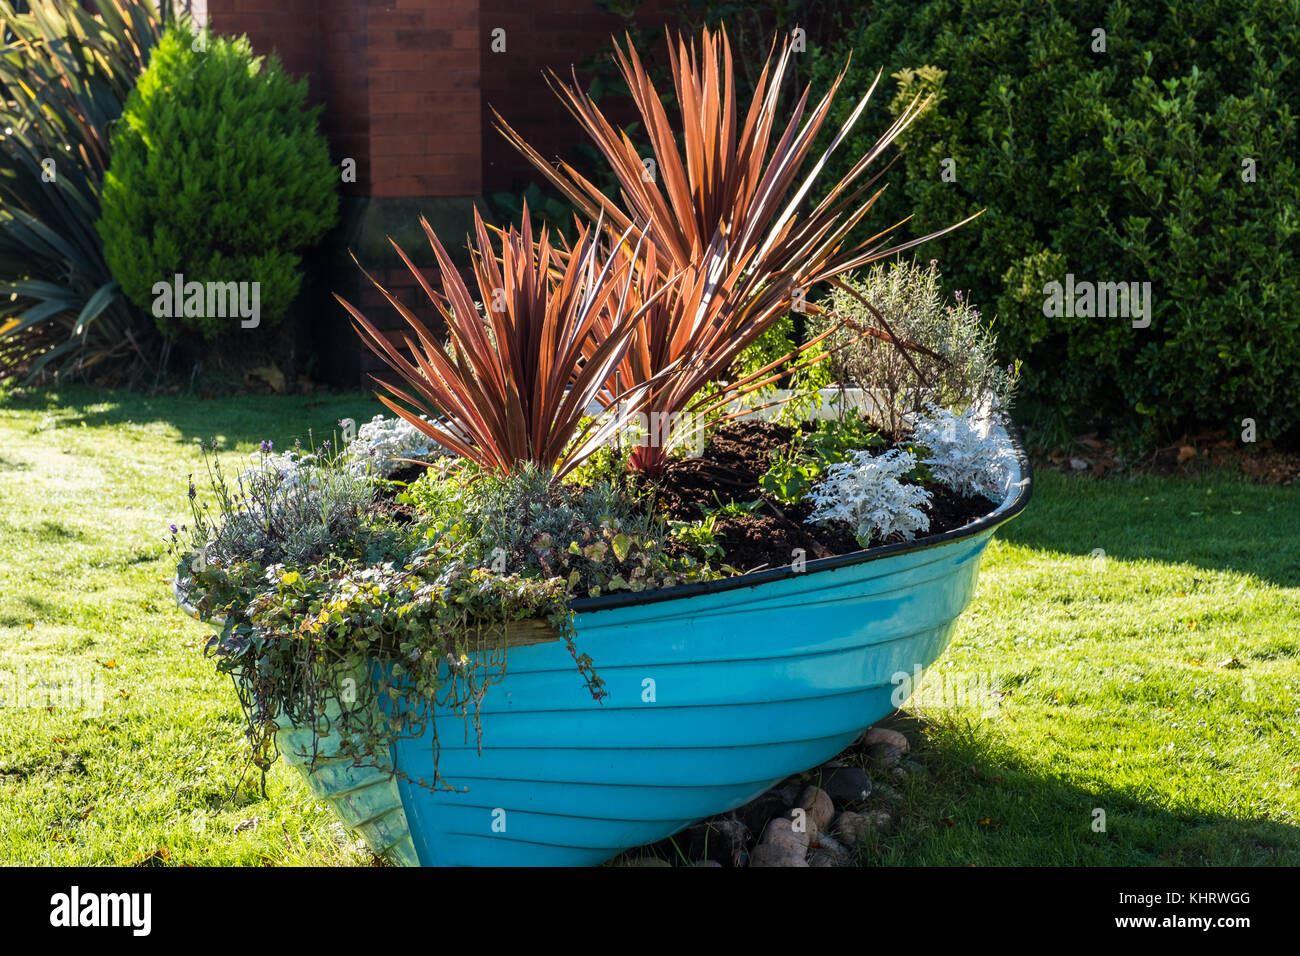 Boat Planter Stock Photos & Boat Planter Stock Images - Alamy on wooden powerboat, wooden tube, wooden airboat, wooden cruiser, wooden yacht, wooden pontoon, wooden sloop, wooden speedboat, wooden barge, wooden warship, wooden motorboat, wooden sailboat, wooden cannon, wooden boat, wooden catamaran, wooden trawler, wooden pirogue, wooden ship, wooden houseboat, wooden rowing shell,